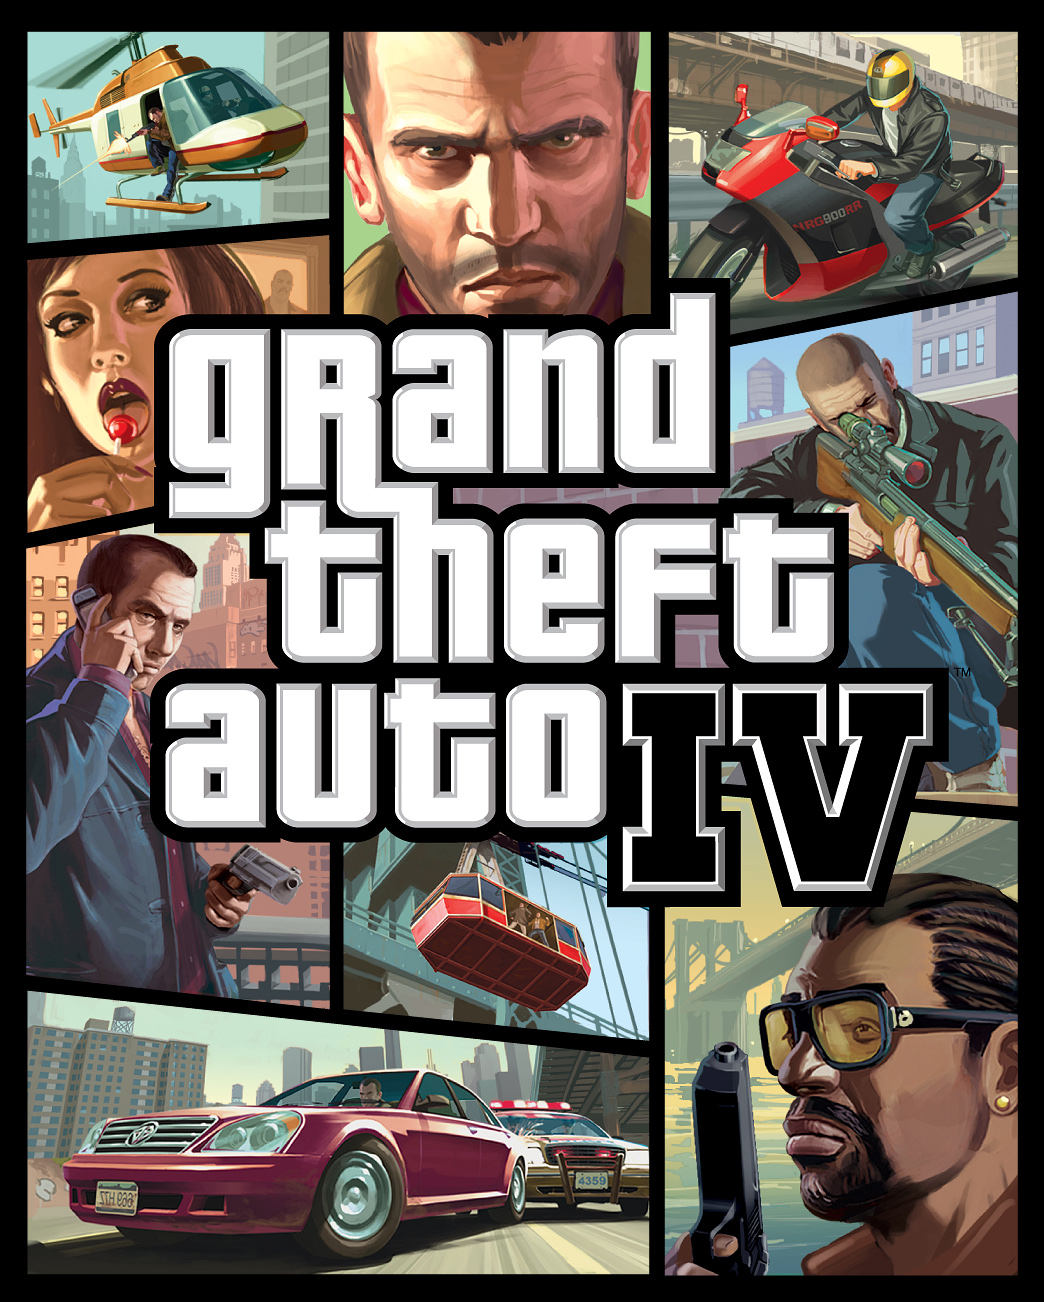 http://renechivas100.blogspot.mx/2015/12/grand-theft-auto-iv-pc.html